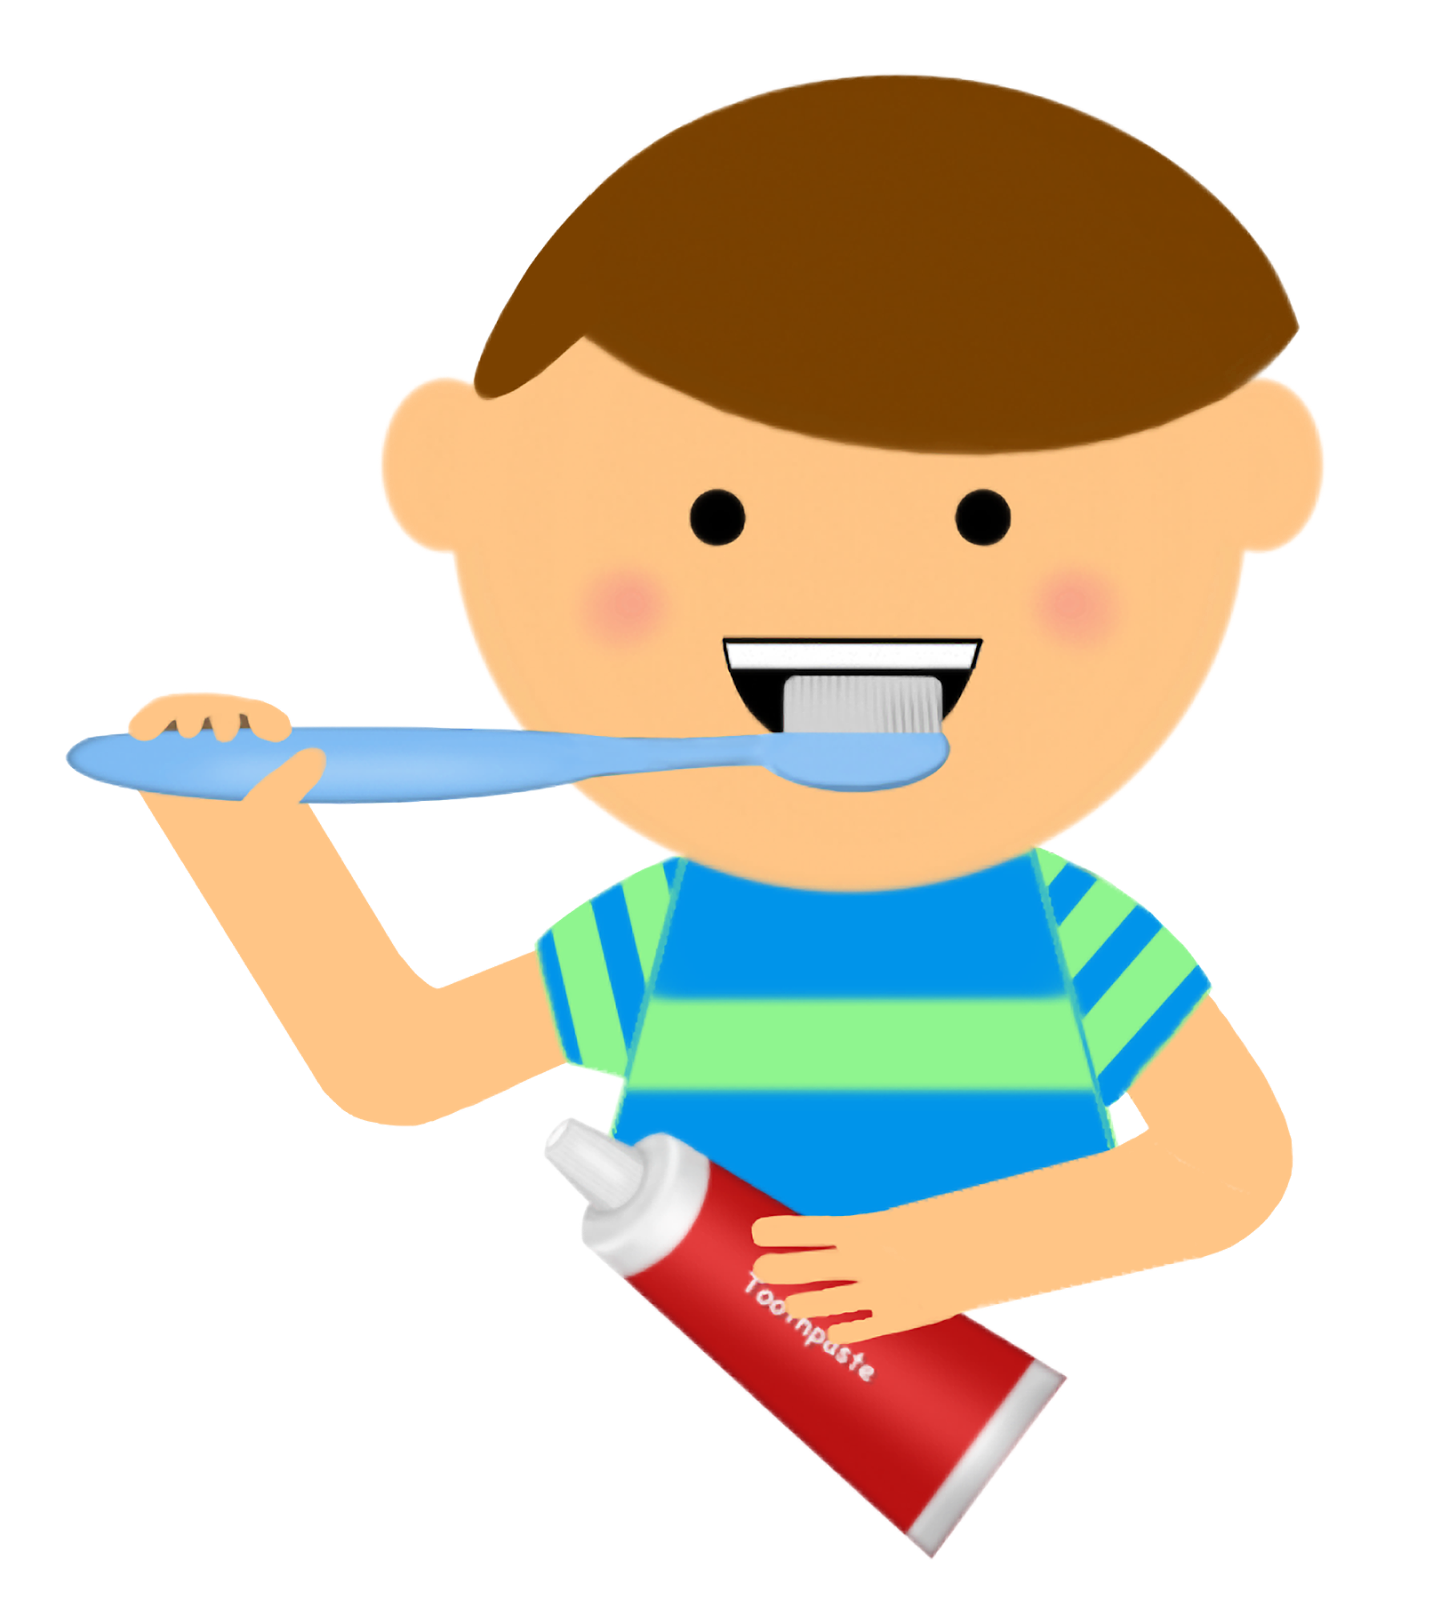 Boy with money clipart clipart free Brushing Teeth Pictures - Cliparts.co | Dentist theme | Pinterest ... clipart free